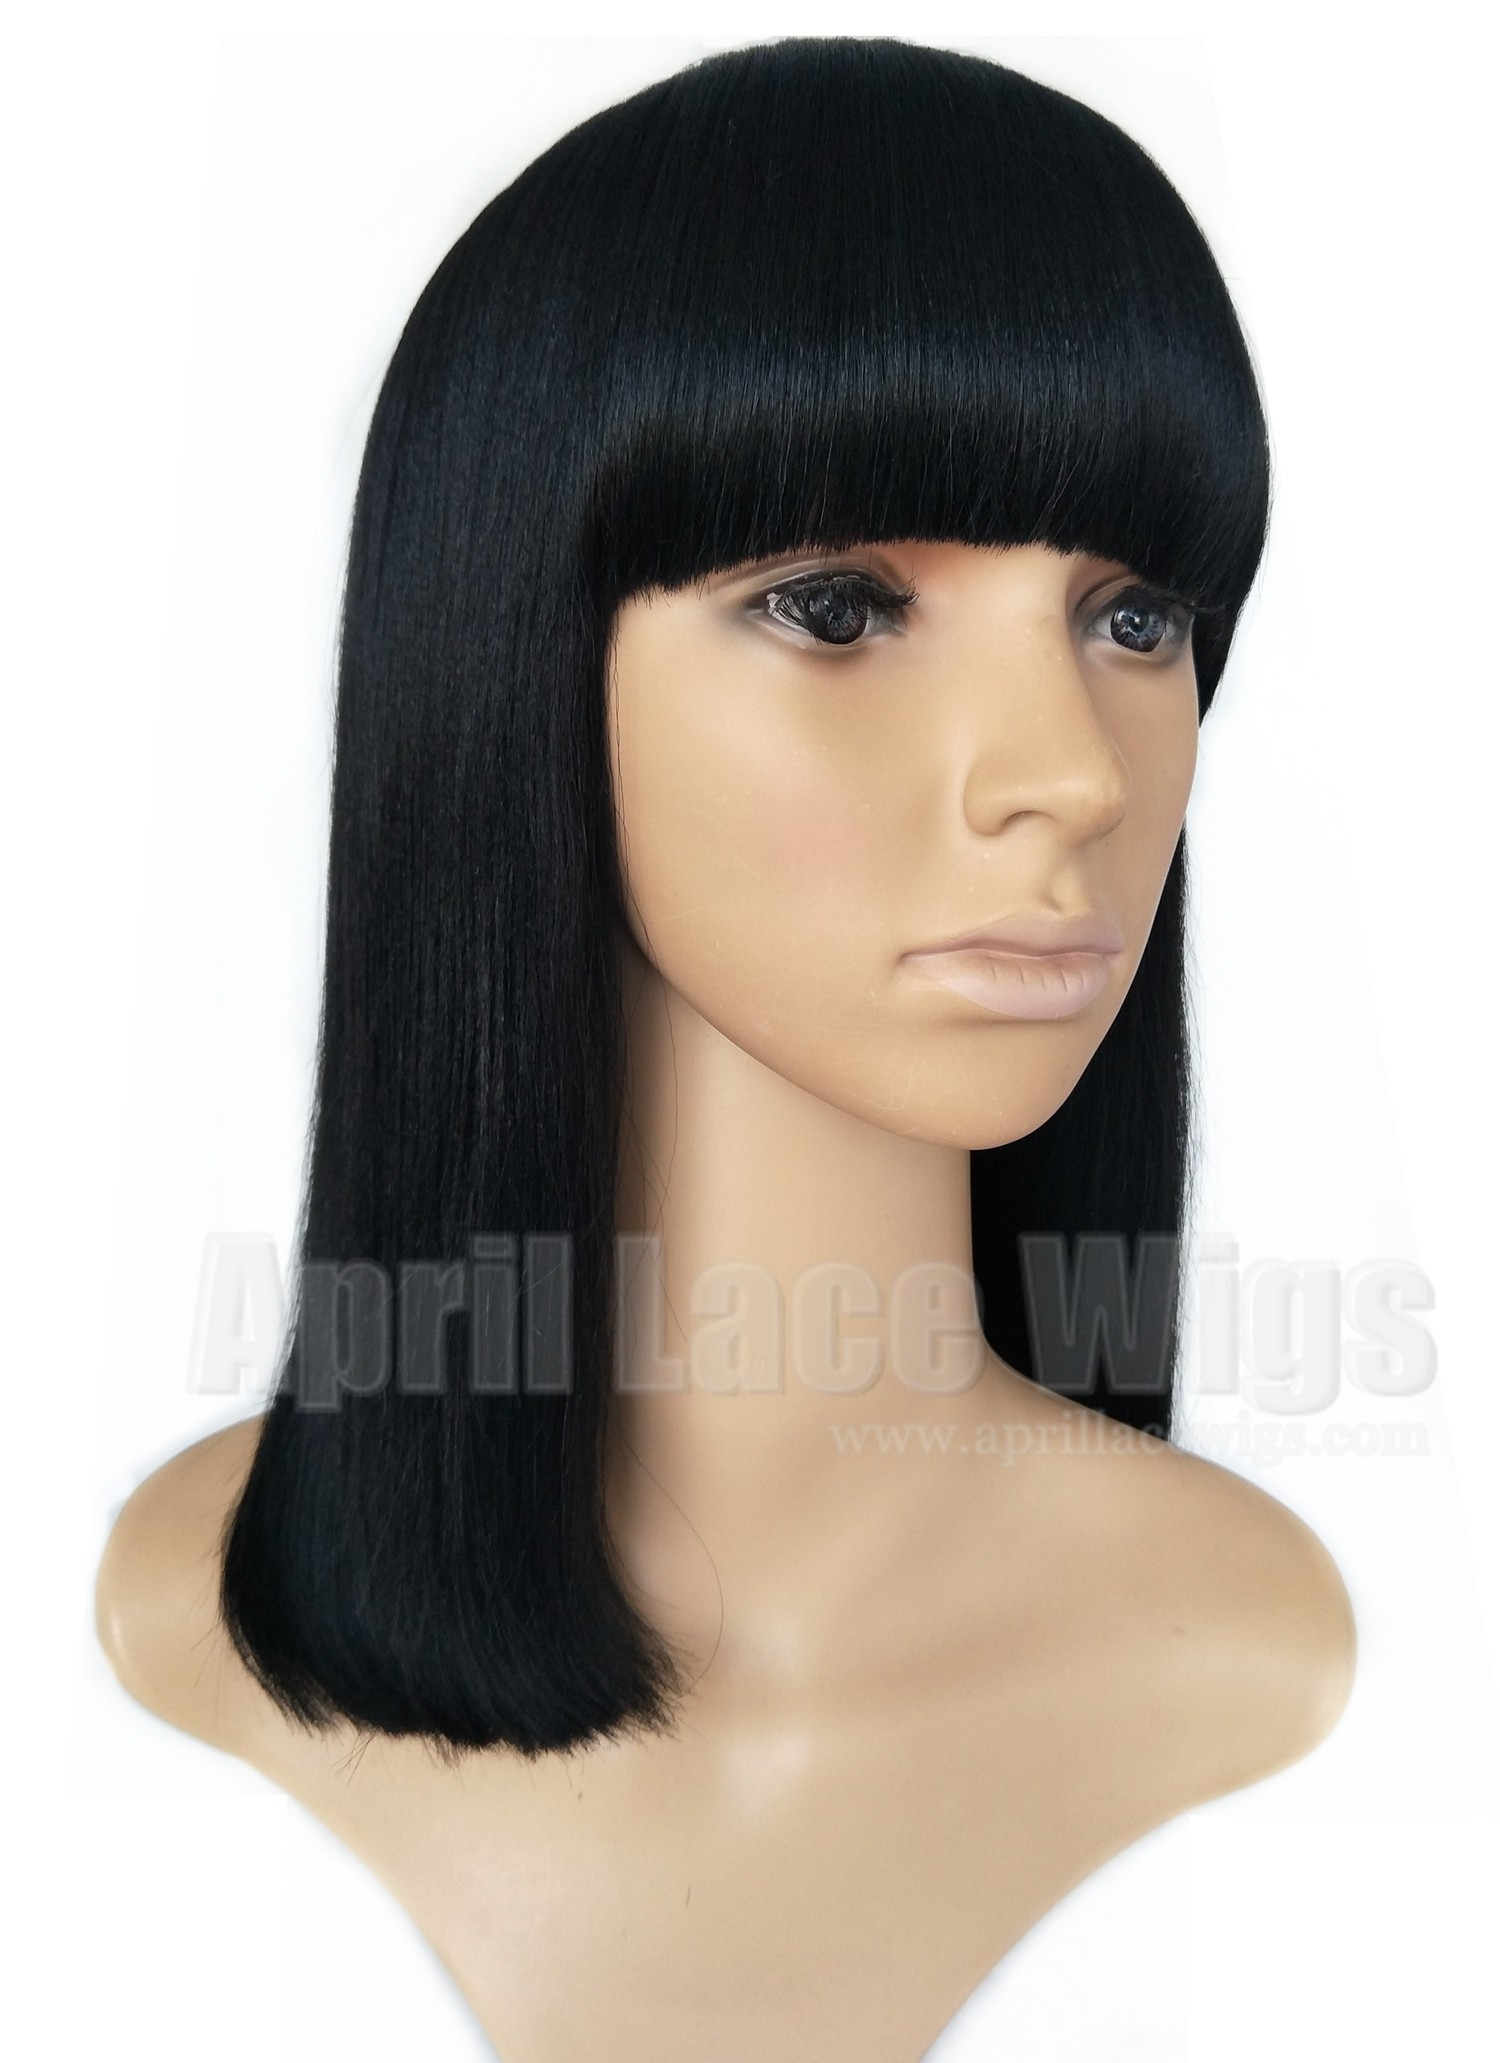 Remy hair blunt cut bob no lace machine made wig with a bang